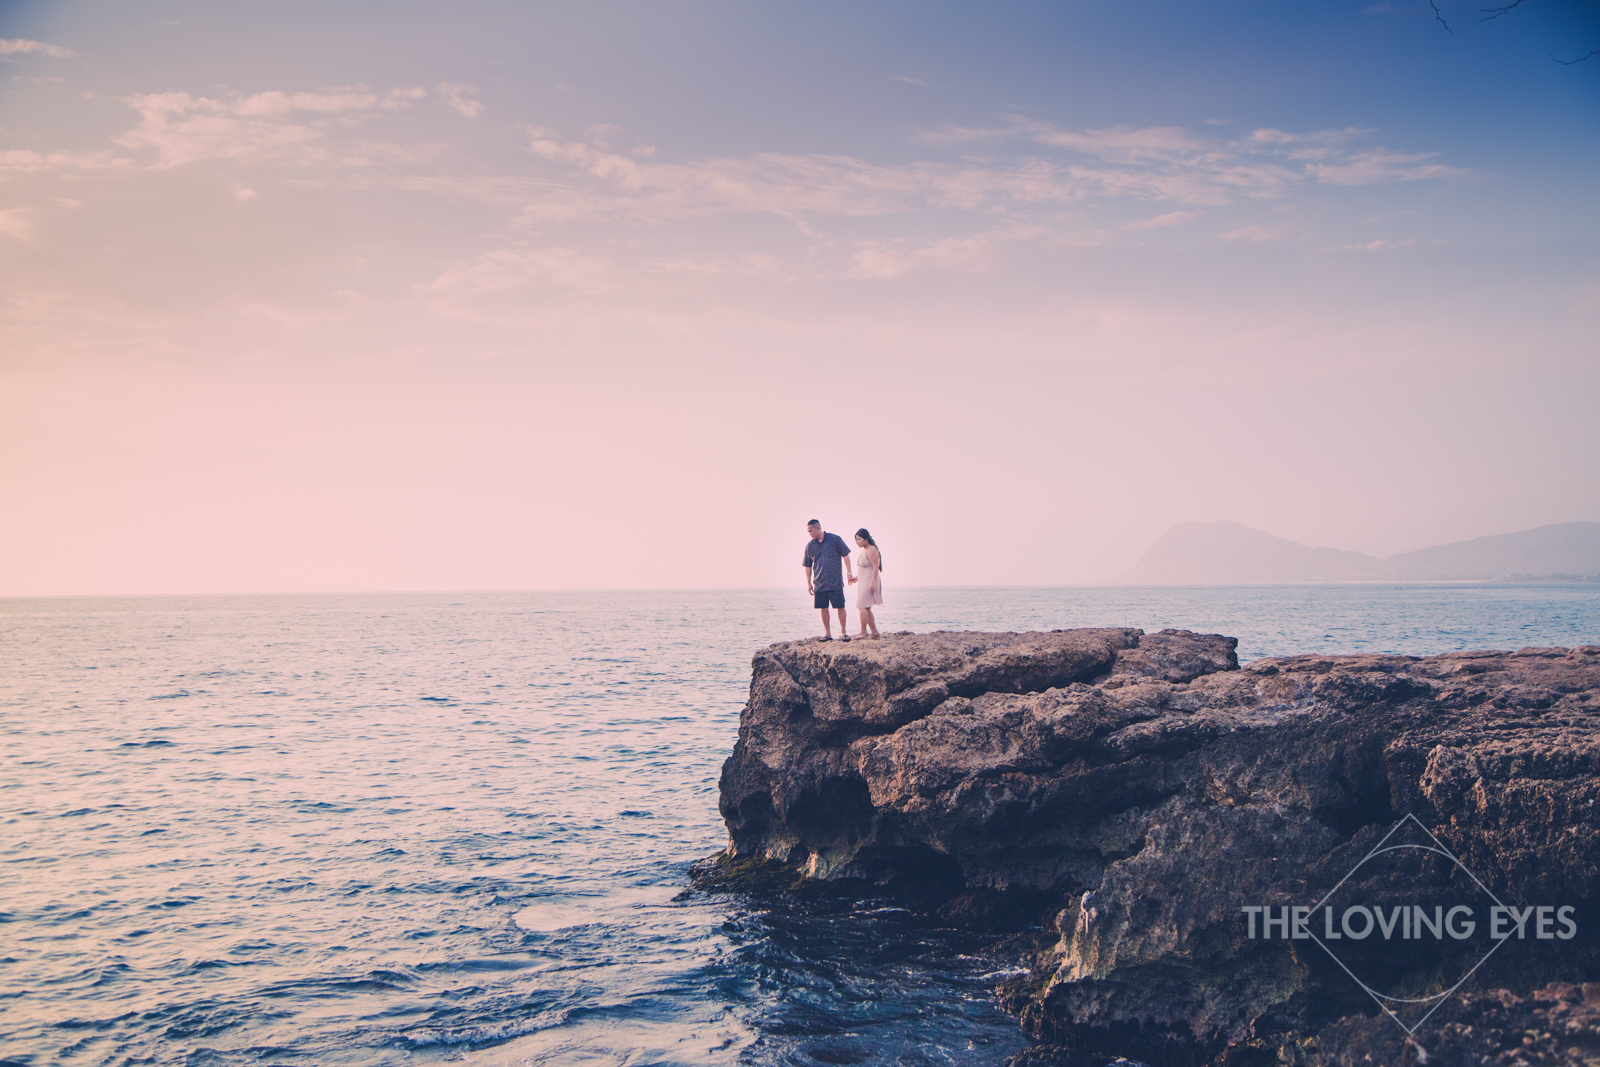 Jeana_and_Clyde_Engagement-9.jpg